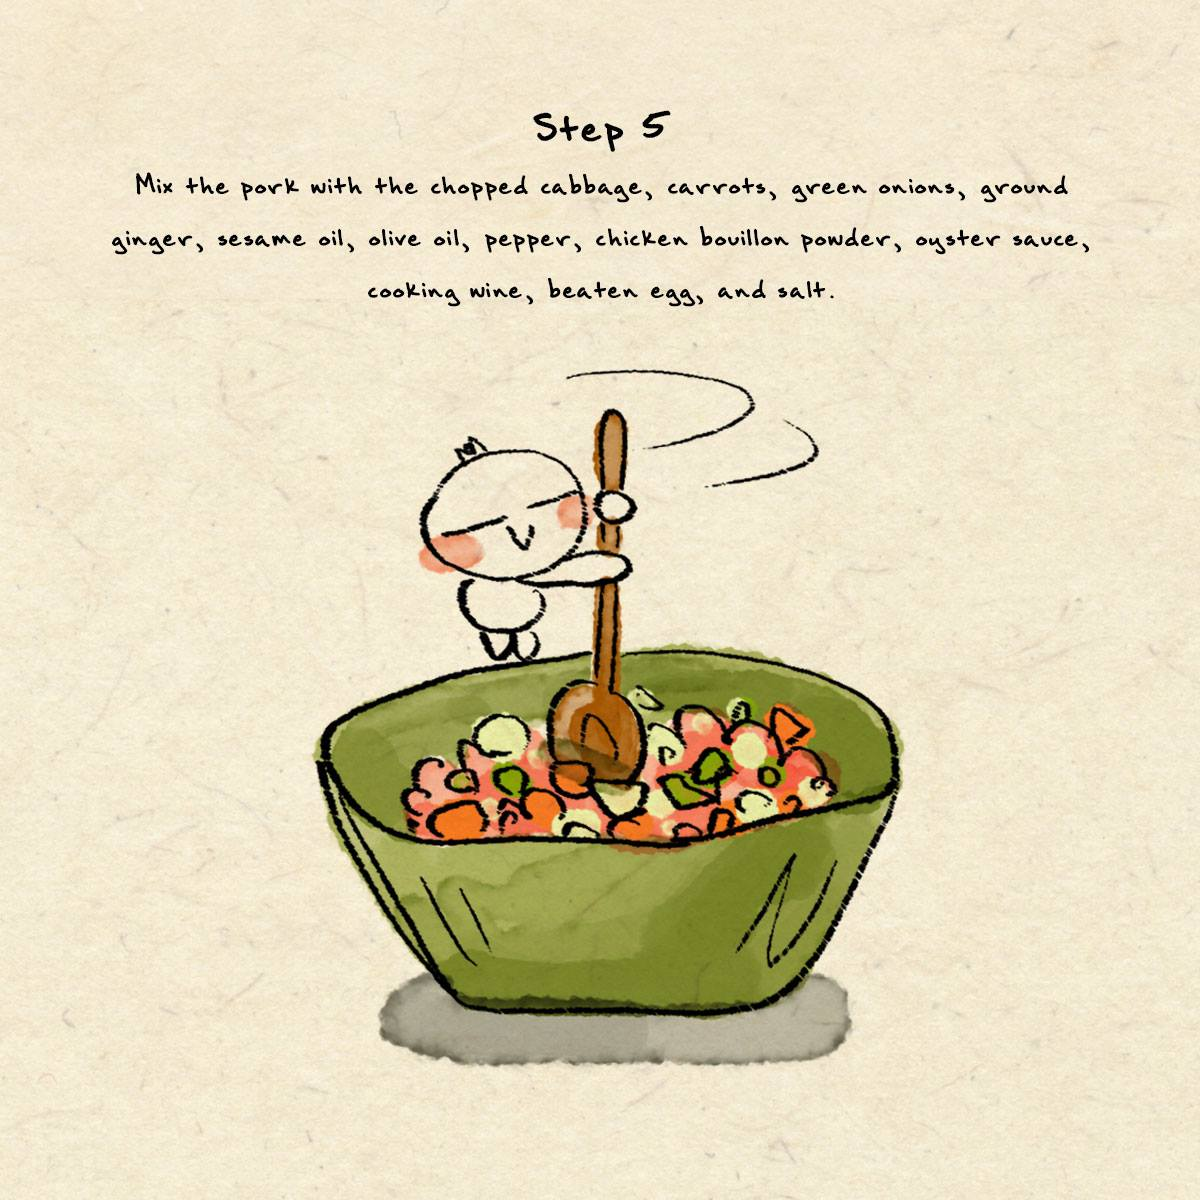 Step 5 in dumpling recipe